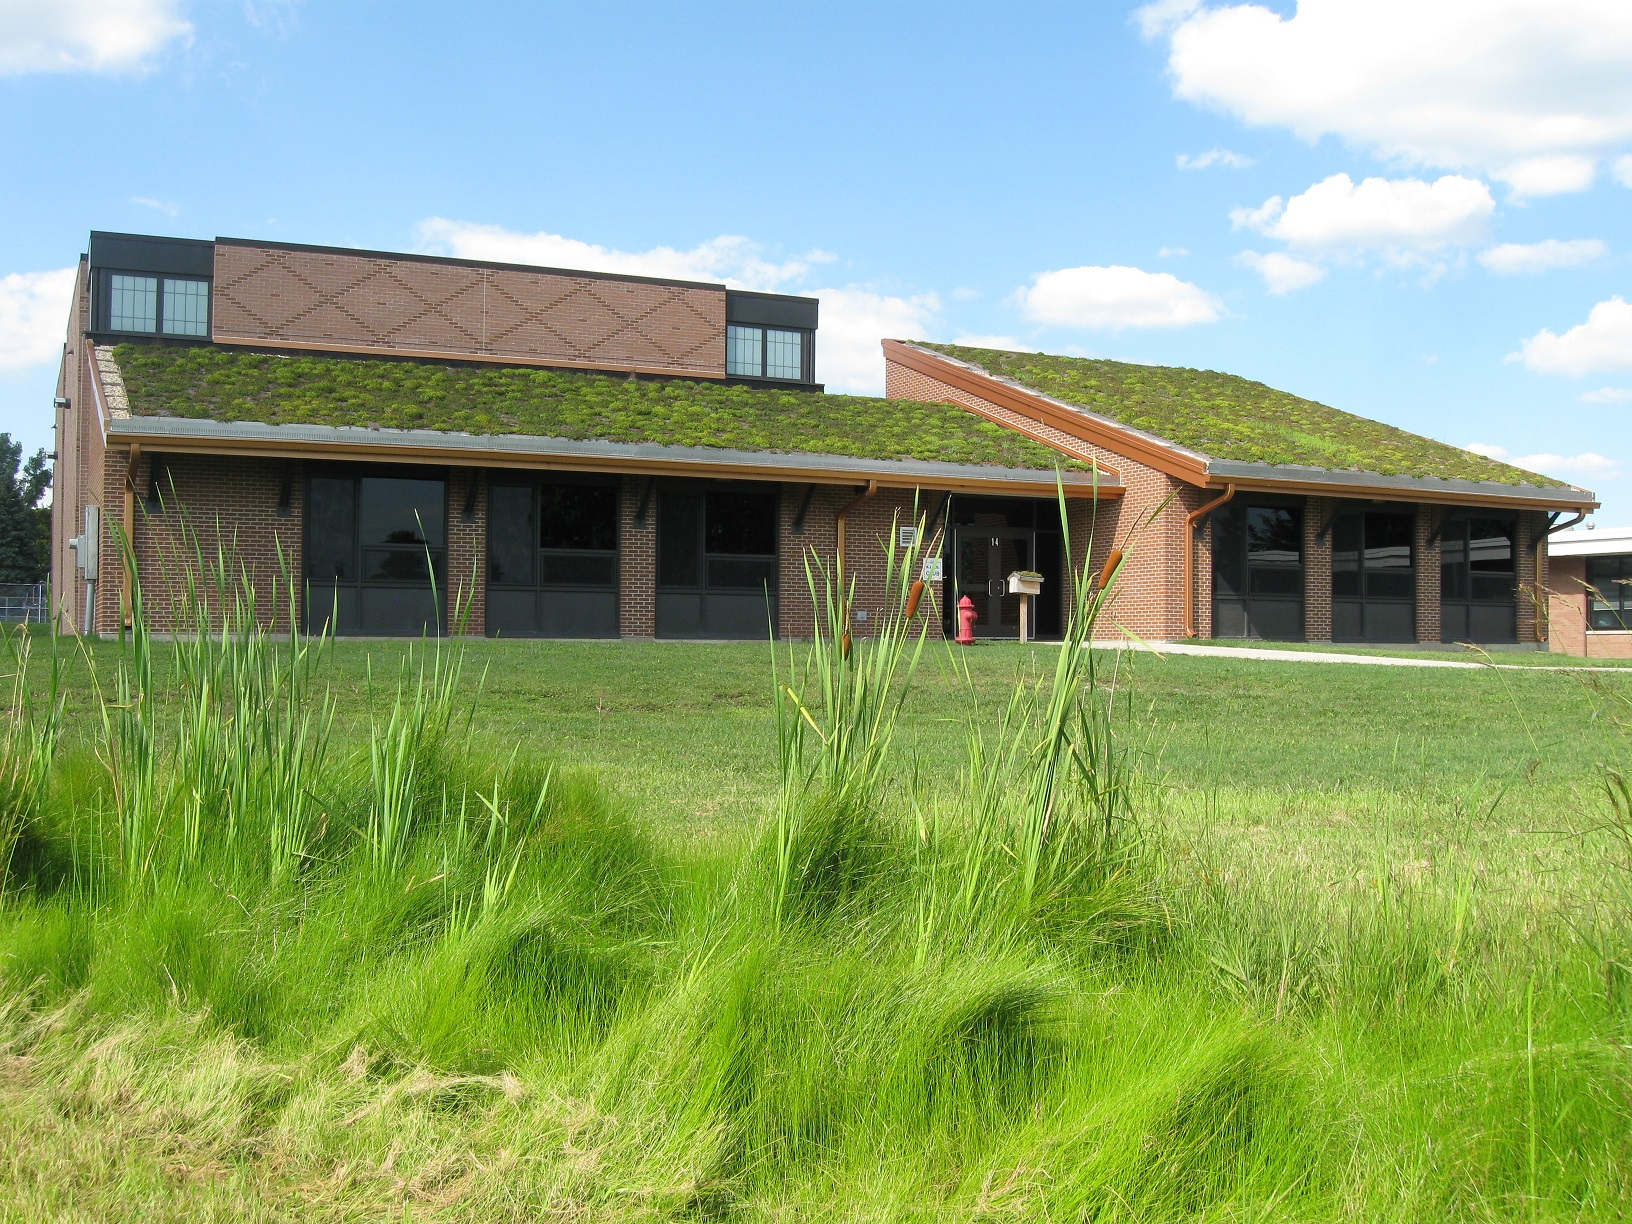 Steeply pitched green roof